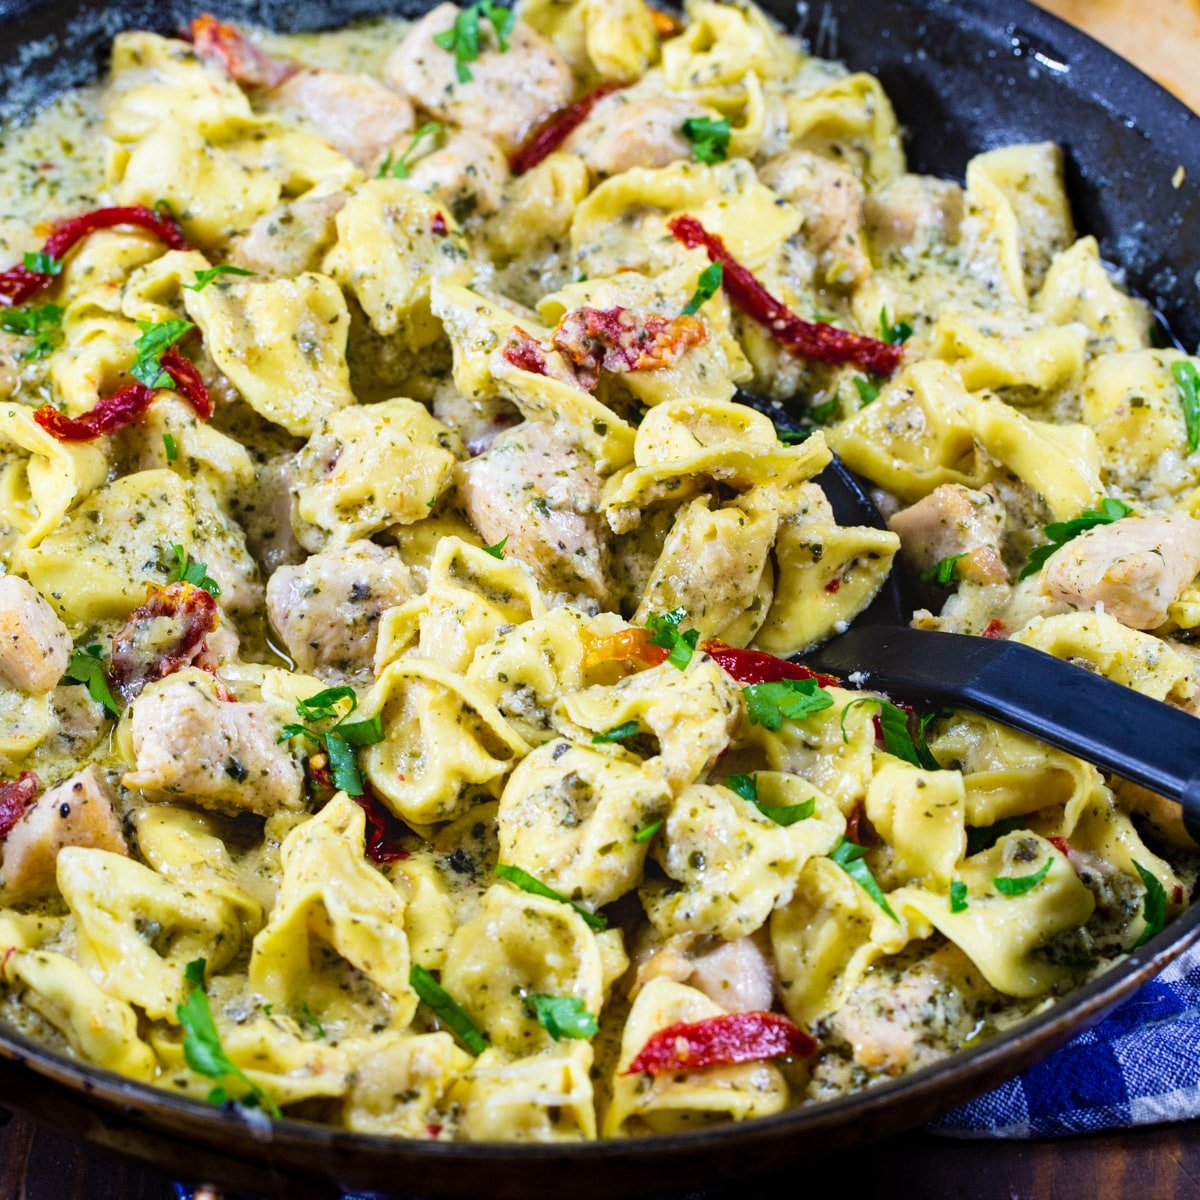 Creamy Pesto Chicken Tortellini in a large skillet.